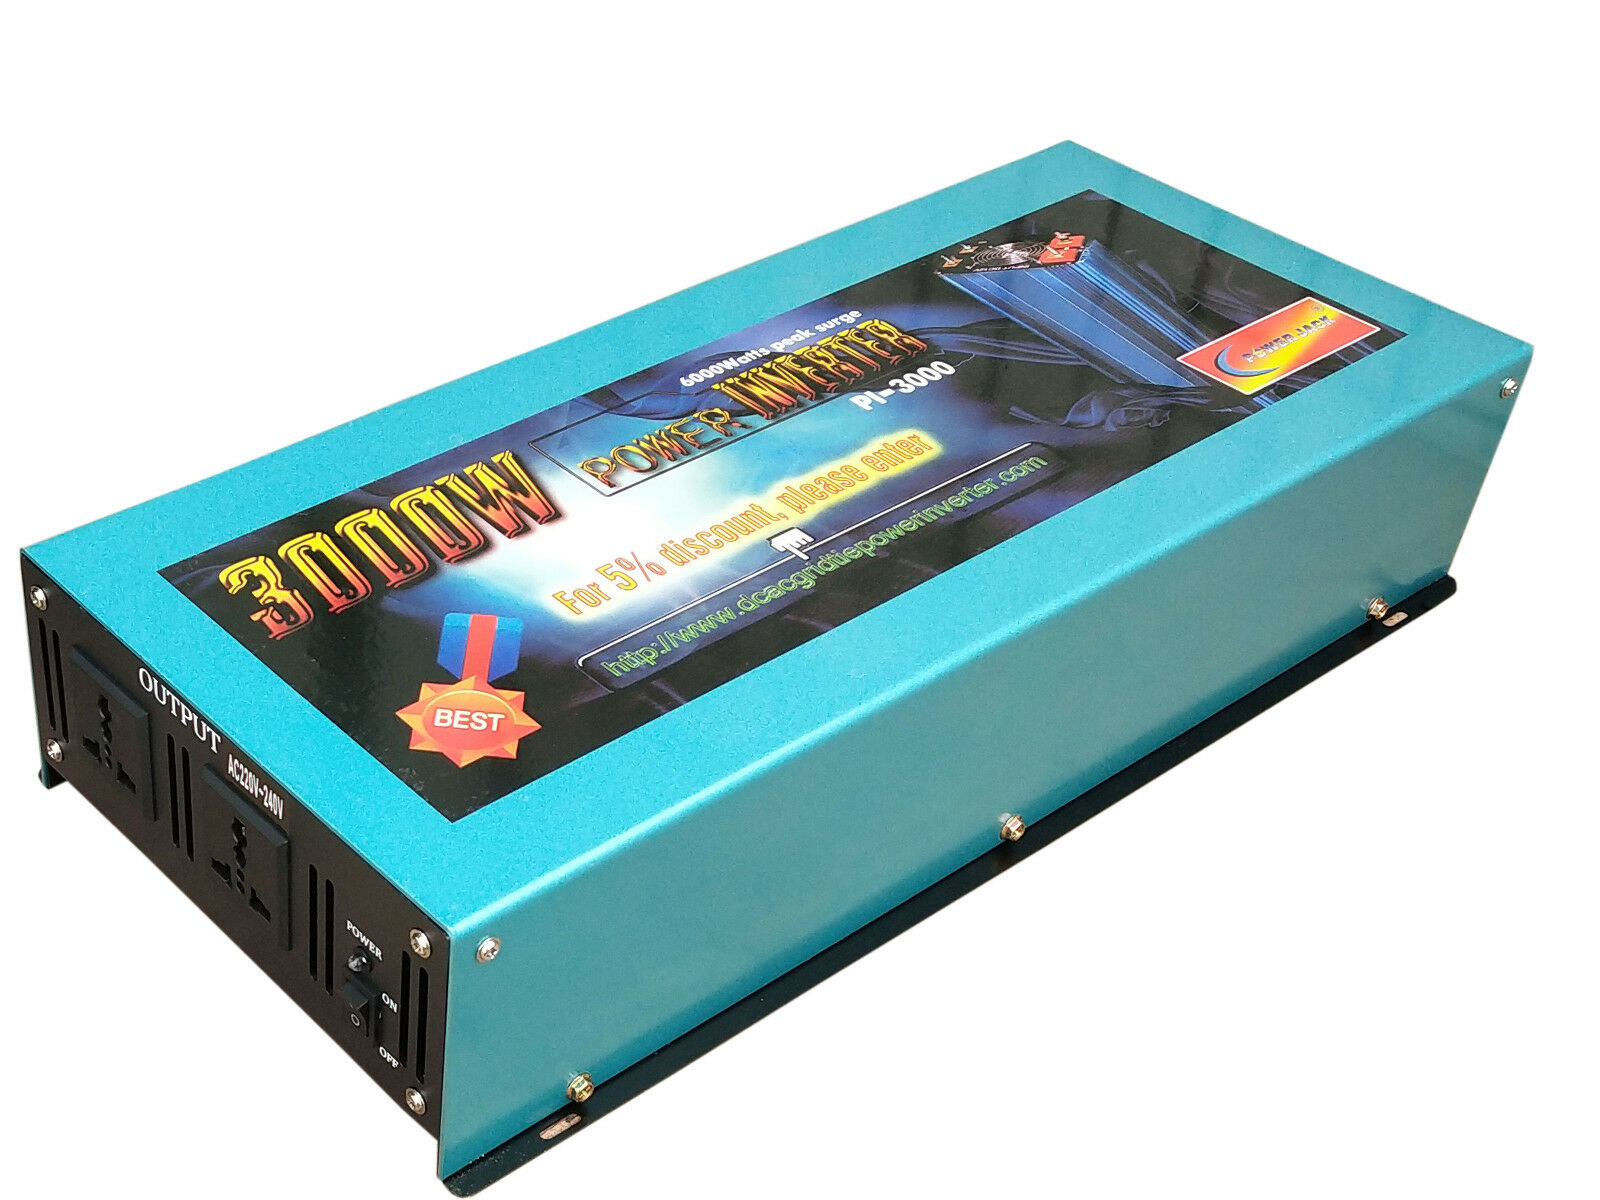 6000W surge power Power Inverter 12V DC to 110V 120V/car pow